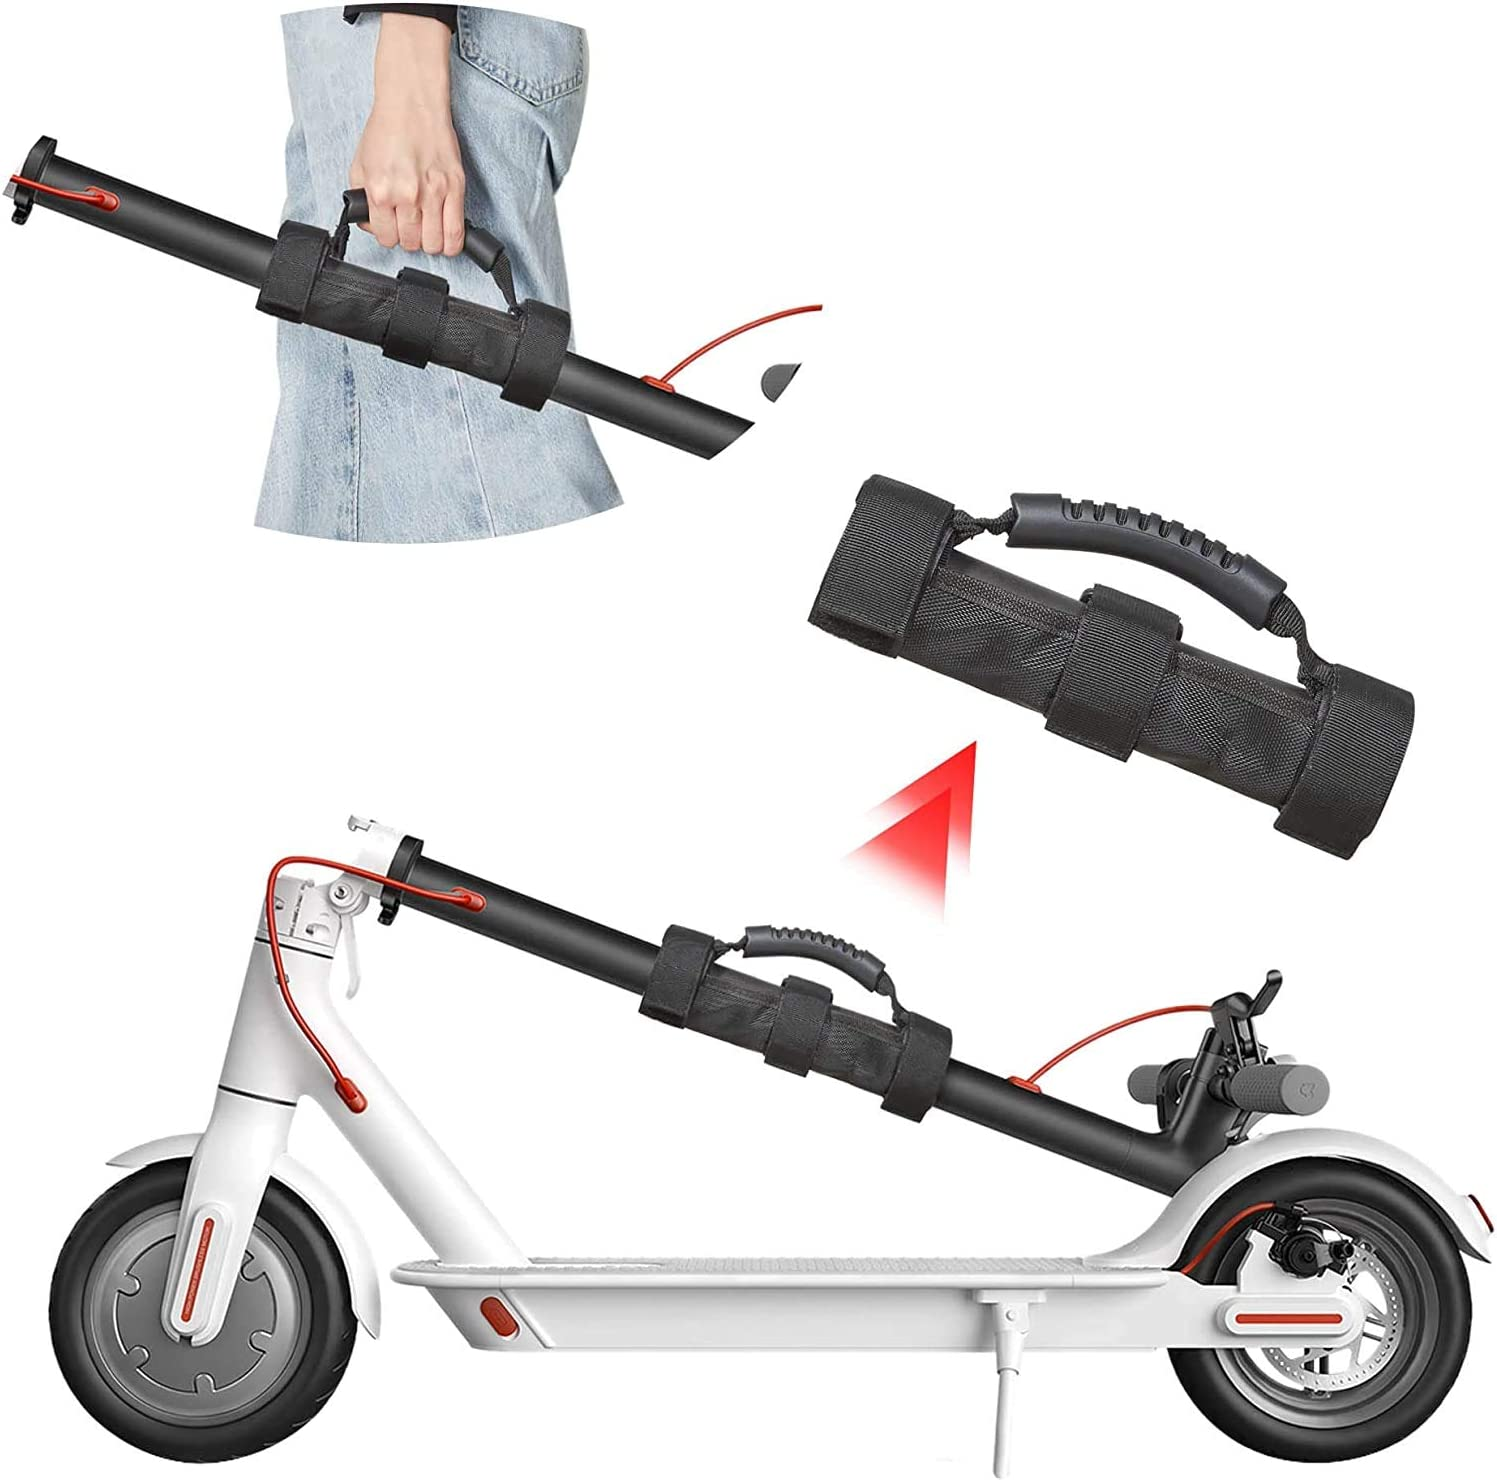 PALAM Scooters Carry Handle Strap Portable Hand Carrying Belt for Kick Scooter Electric Scooter Folding Bike with Innovative Gel Non-Slip